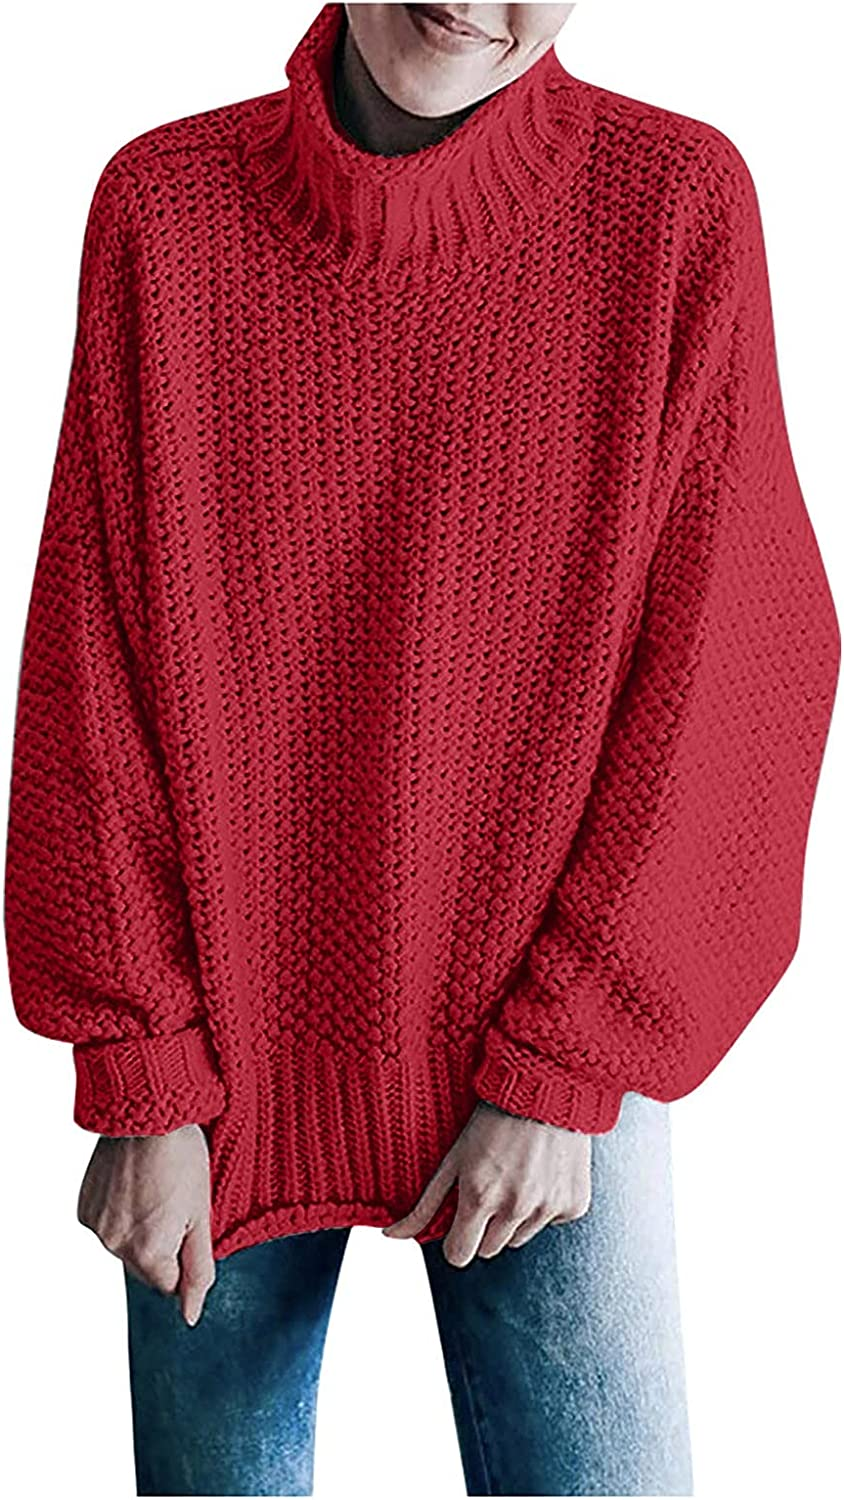 Women'S Pullover Knitted Sweater Solid Color Mesh Pattern Turtleneck Loose Large Size Wool Sweater